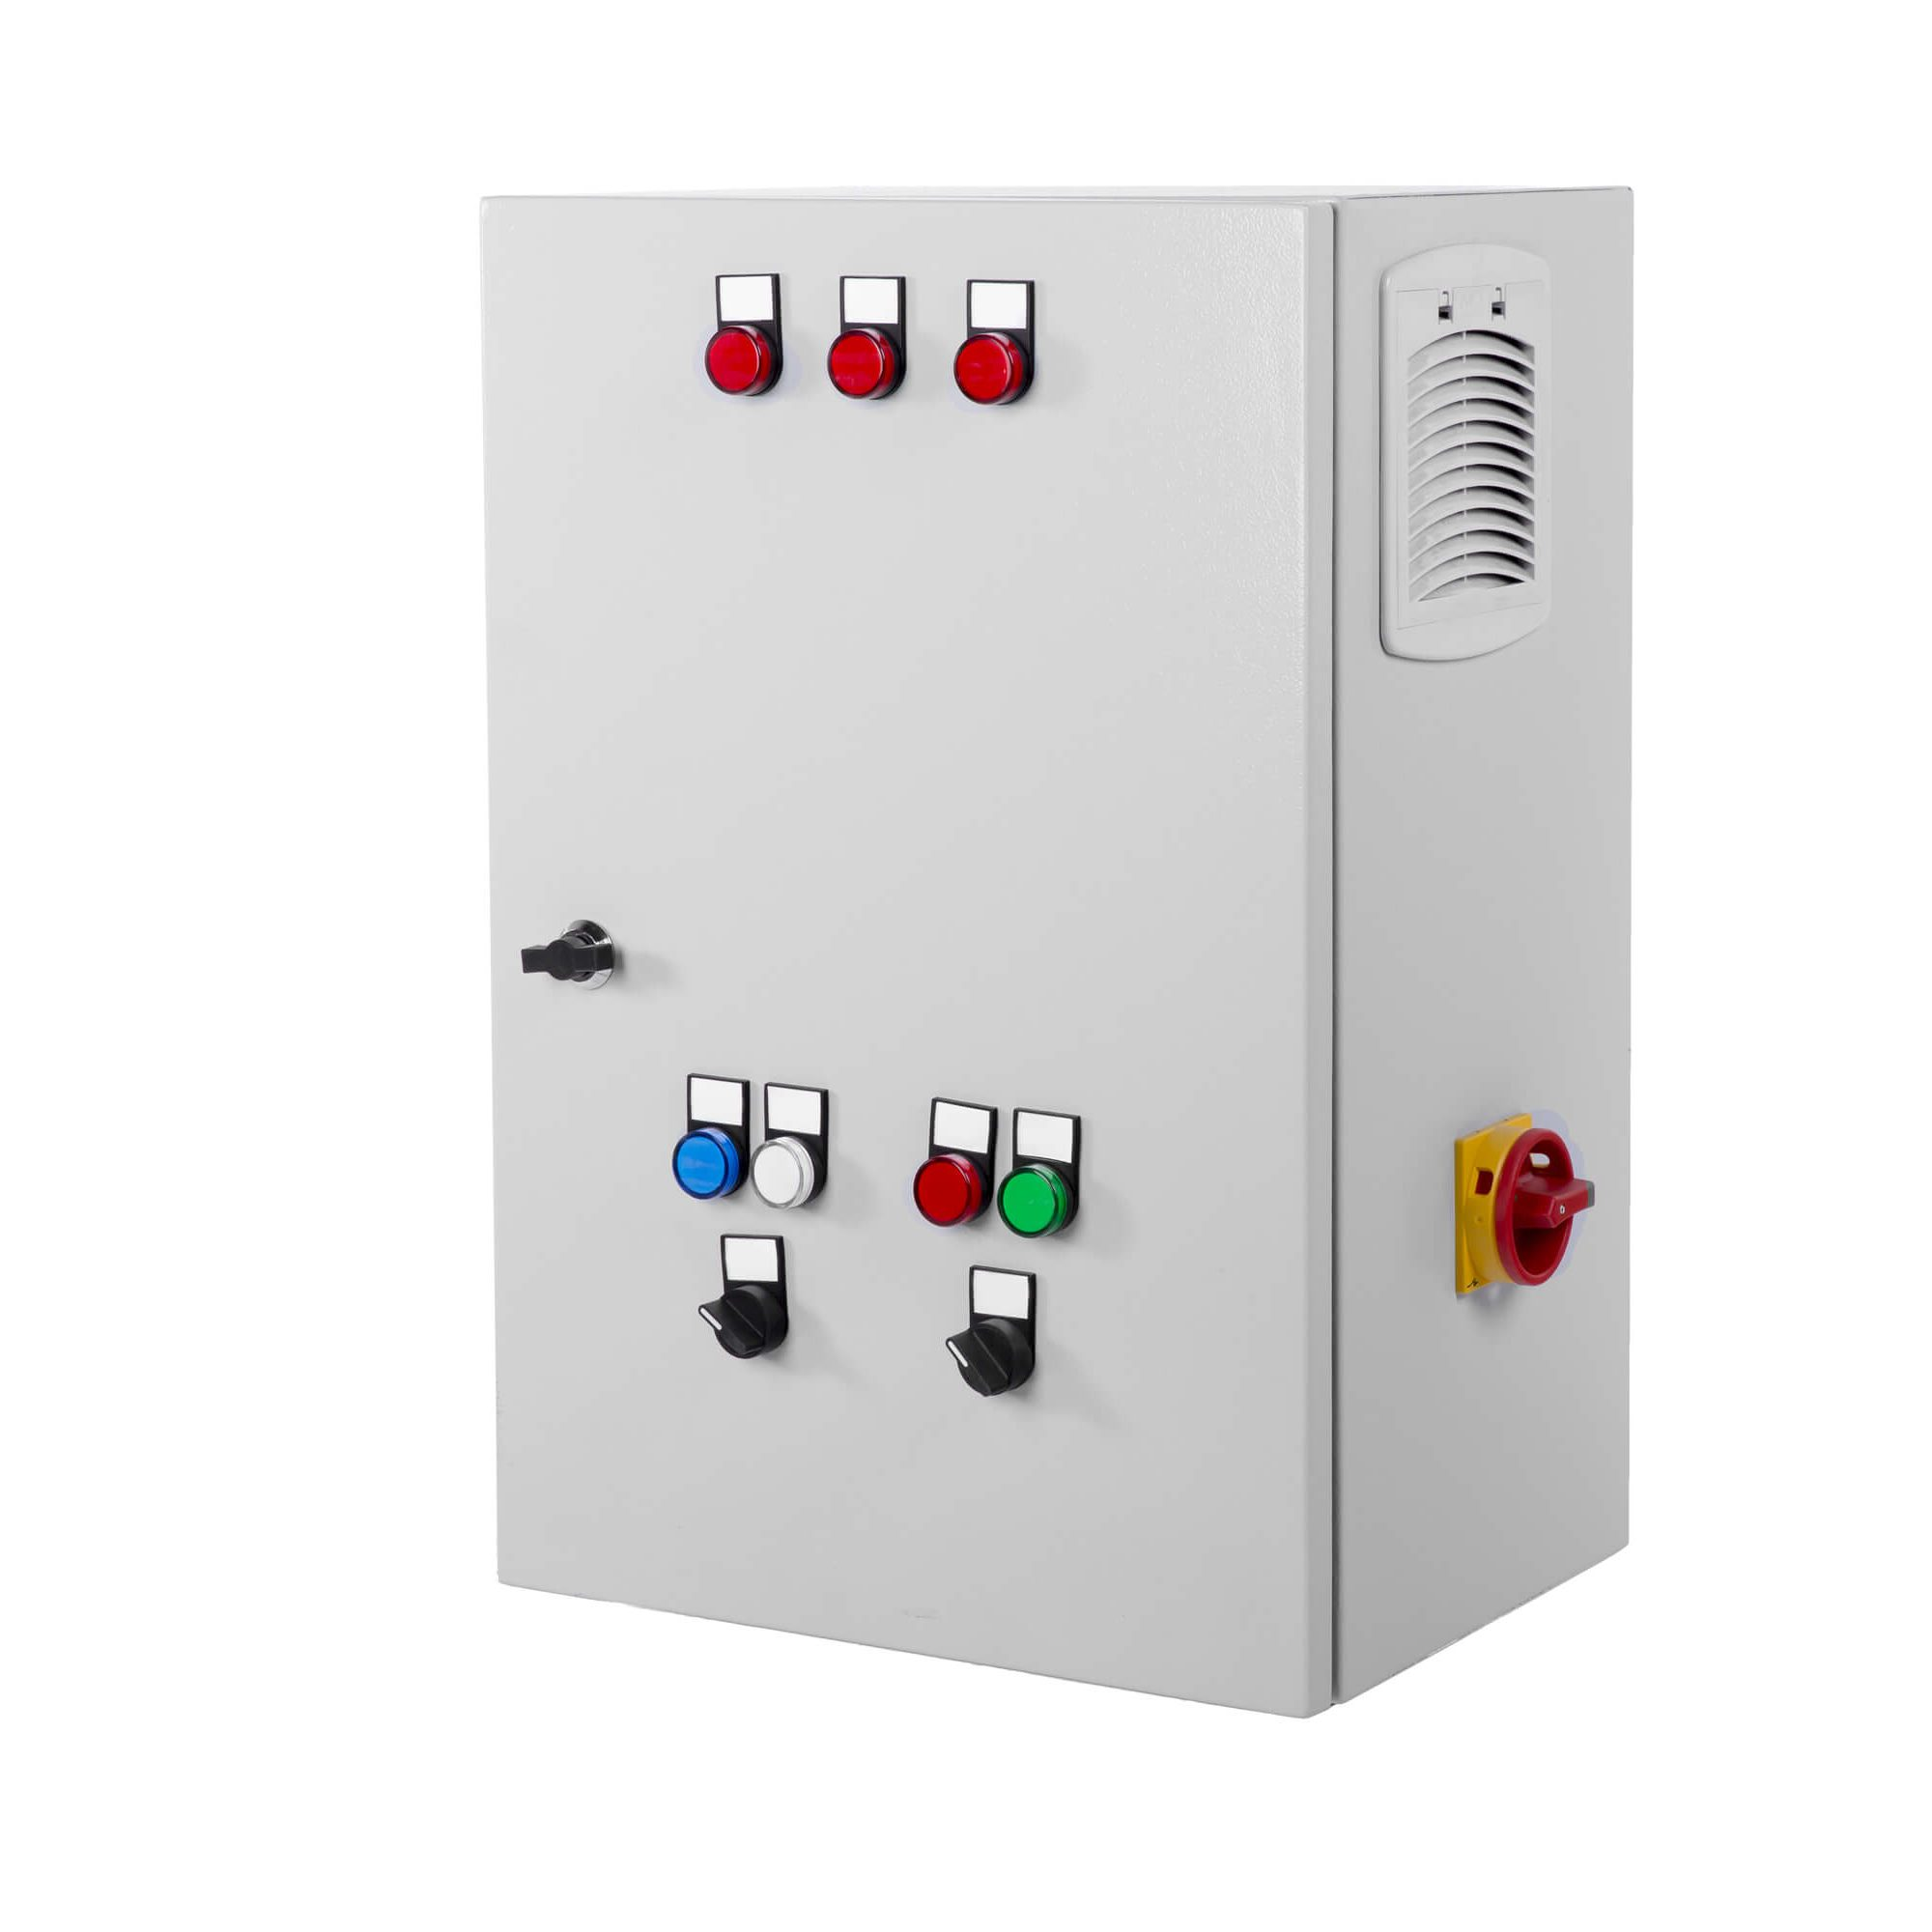 stock-photo-the-brand-new-electrical-box-contains-many-terminals-relays-wires-and-switches-isolated-on-white-707050675